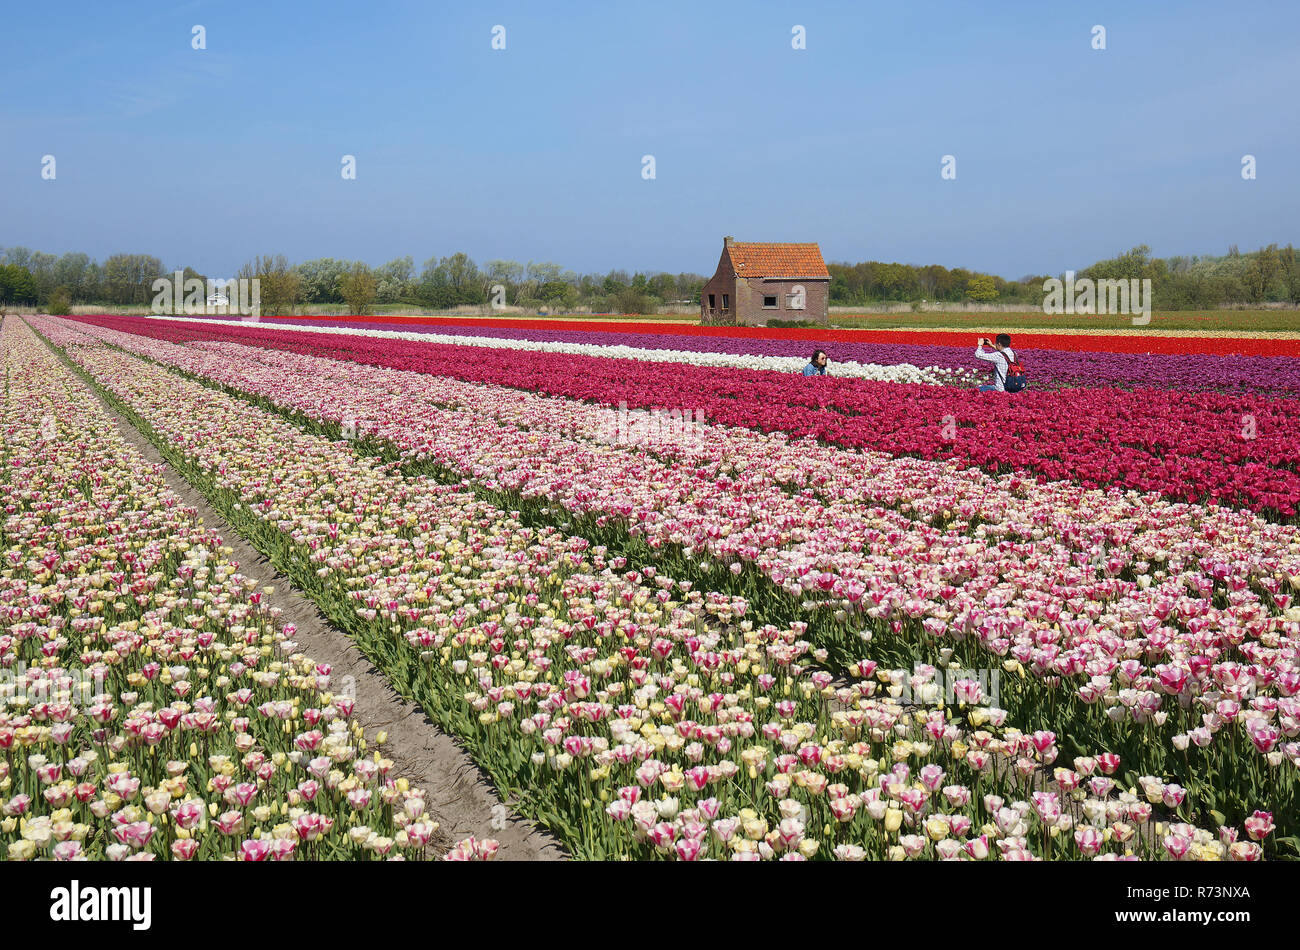 Tourists taking photo's in a tulipfield, Holland,Netherlands. Stock Photo